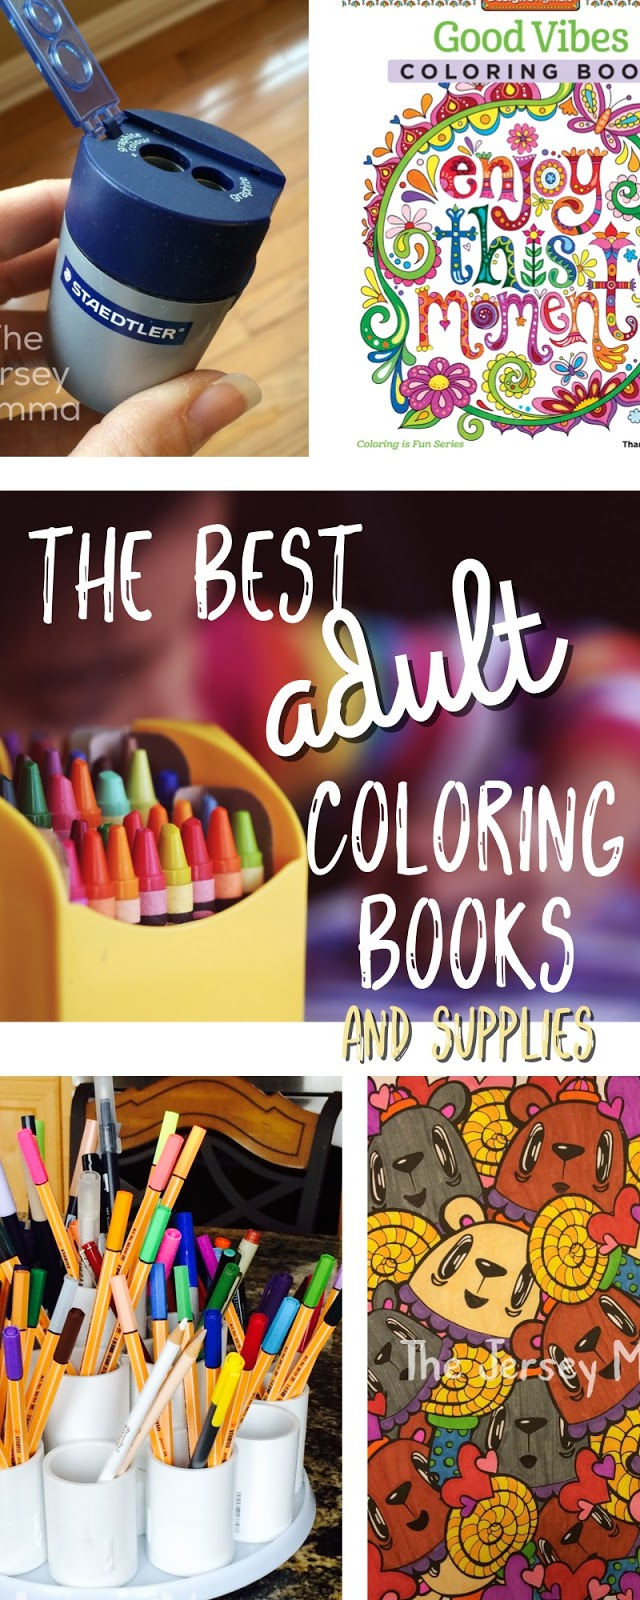 Of Adult Coloring Books And Mediums So Here Are A Few My Favorites Along With Some Tips If You Plan On Trying This Fabulous Hobby For Yourself